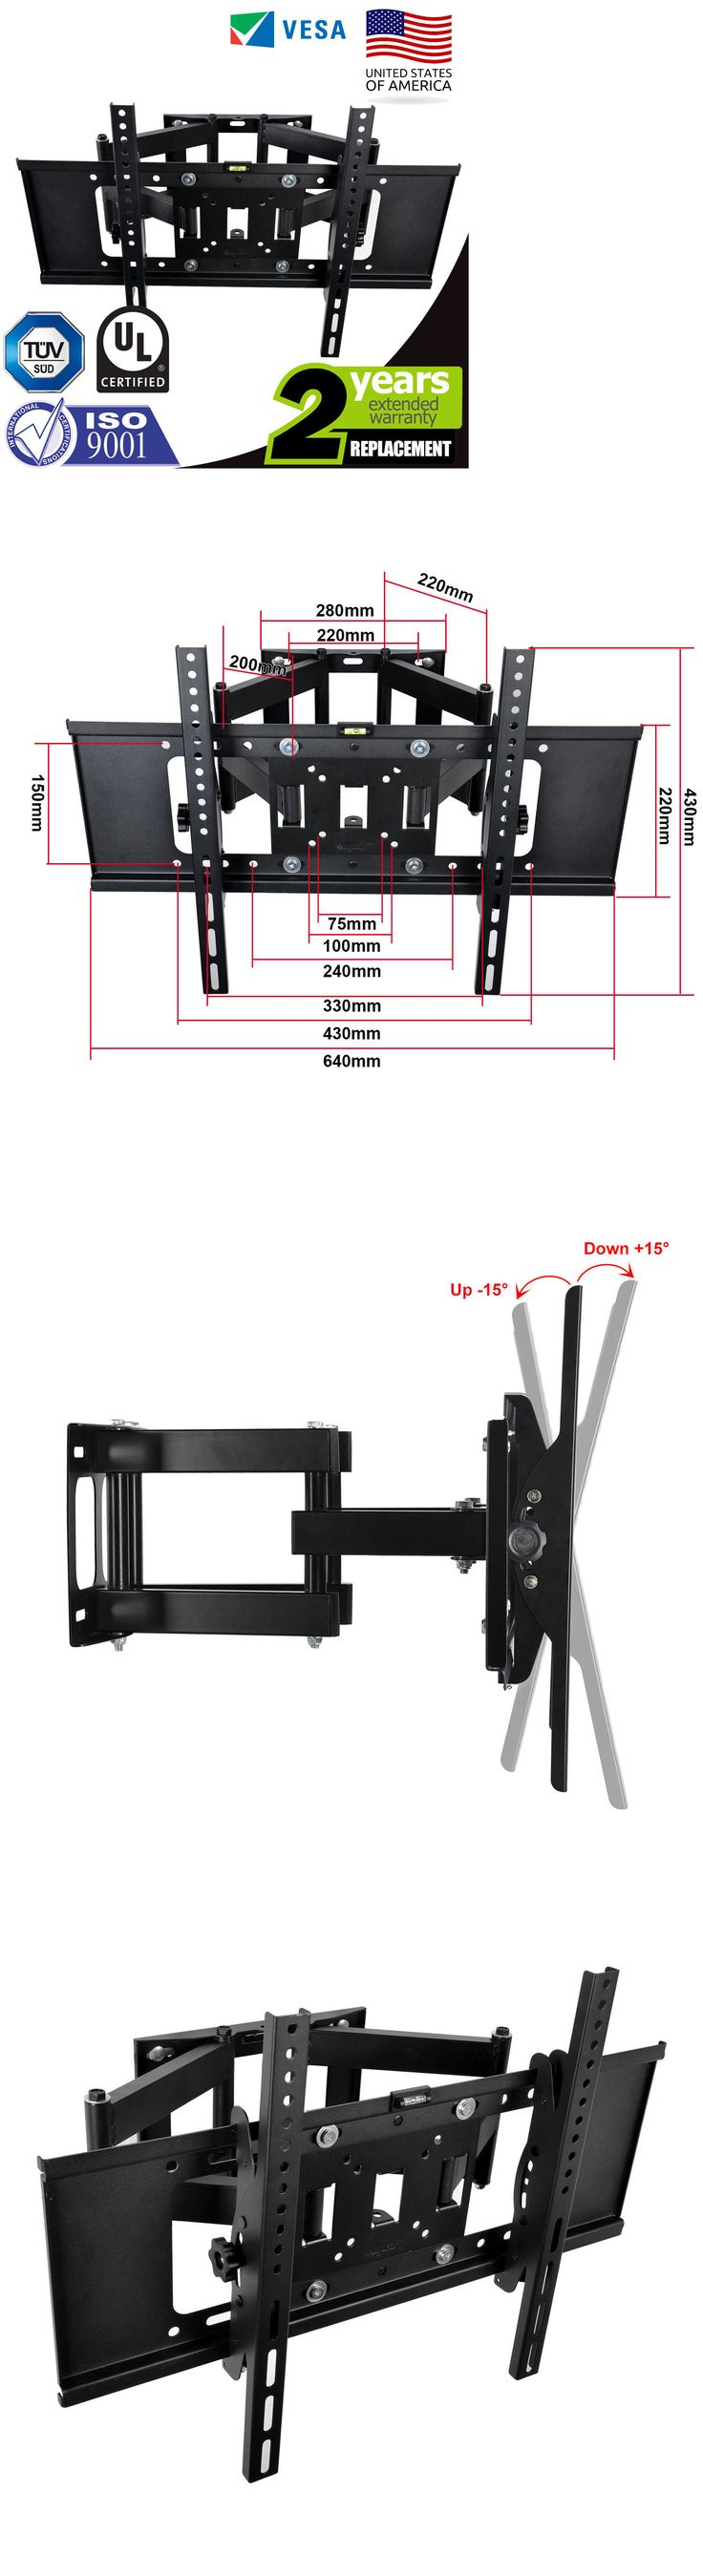 TV Mounts and Brackets: Articulating Swivel Tilting Tv Wall Mount Bracket 32 40 46 50 55 60 65 70 -> BUY IT NOW ONLY: $31.49 on eBay!